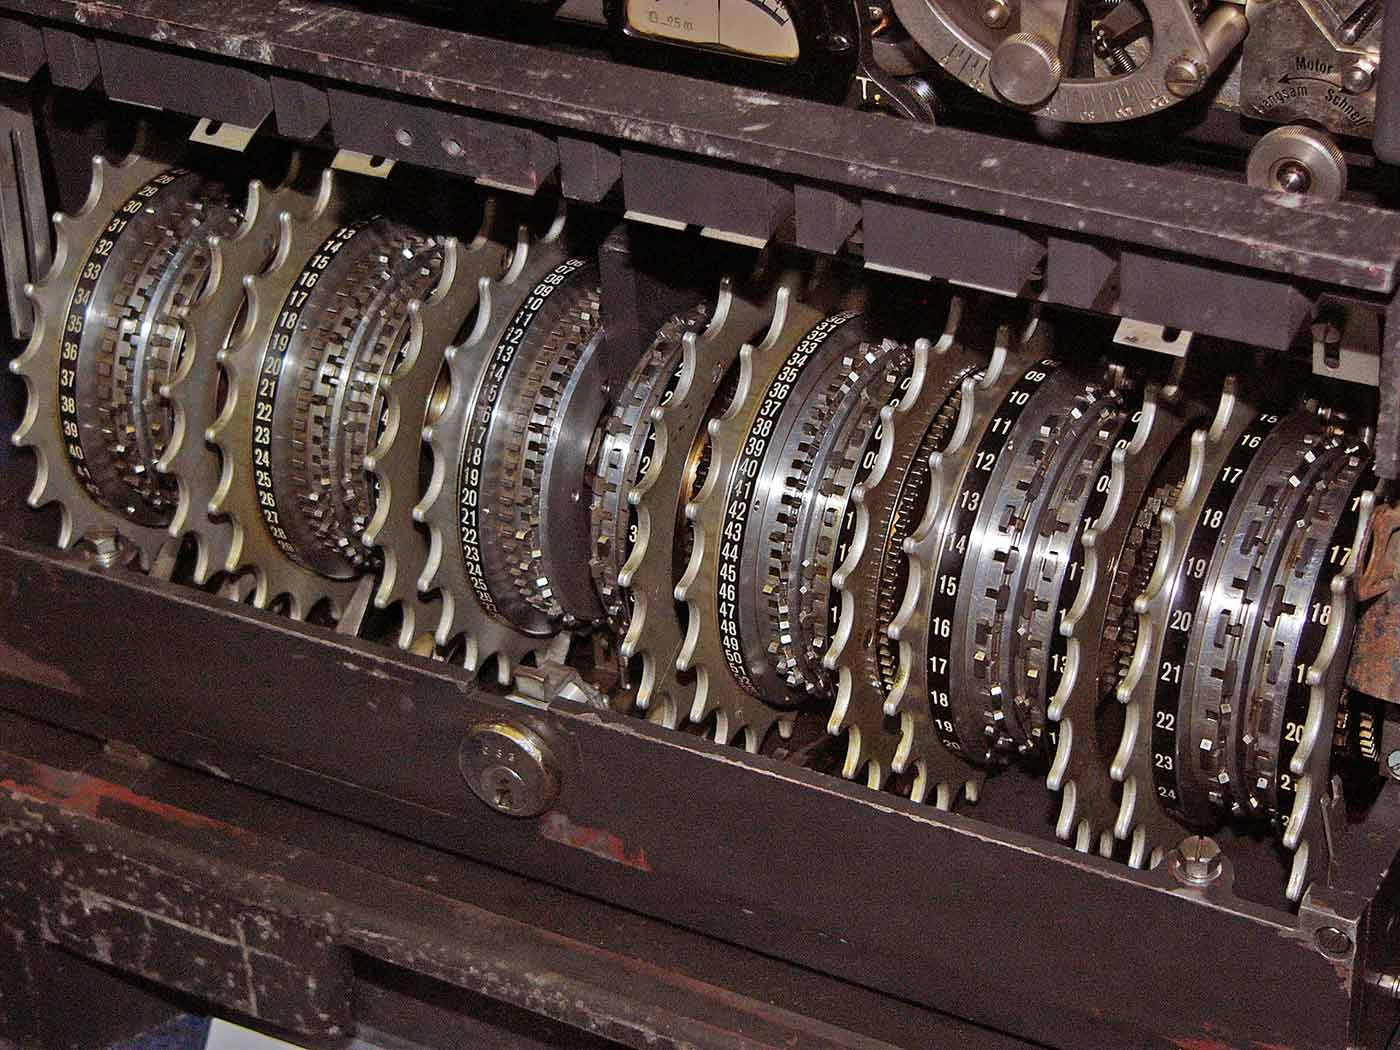 The Lorenz machine was used by the Germans to encrypt high-level teleprinter communications.